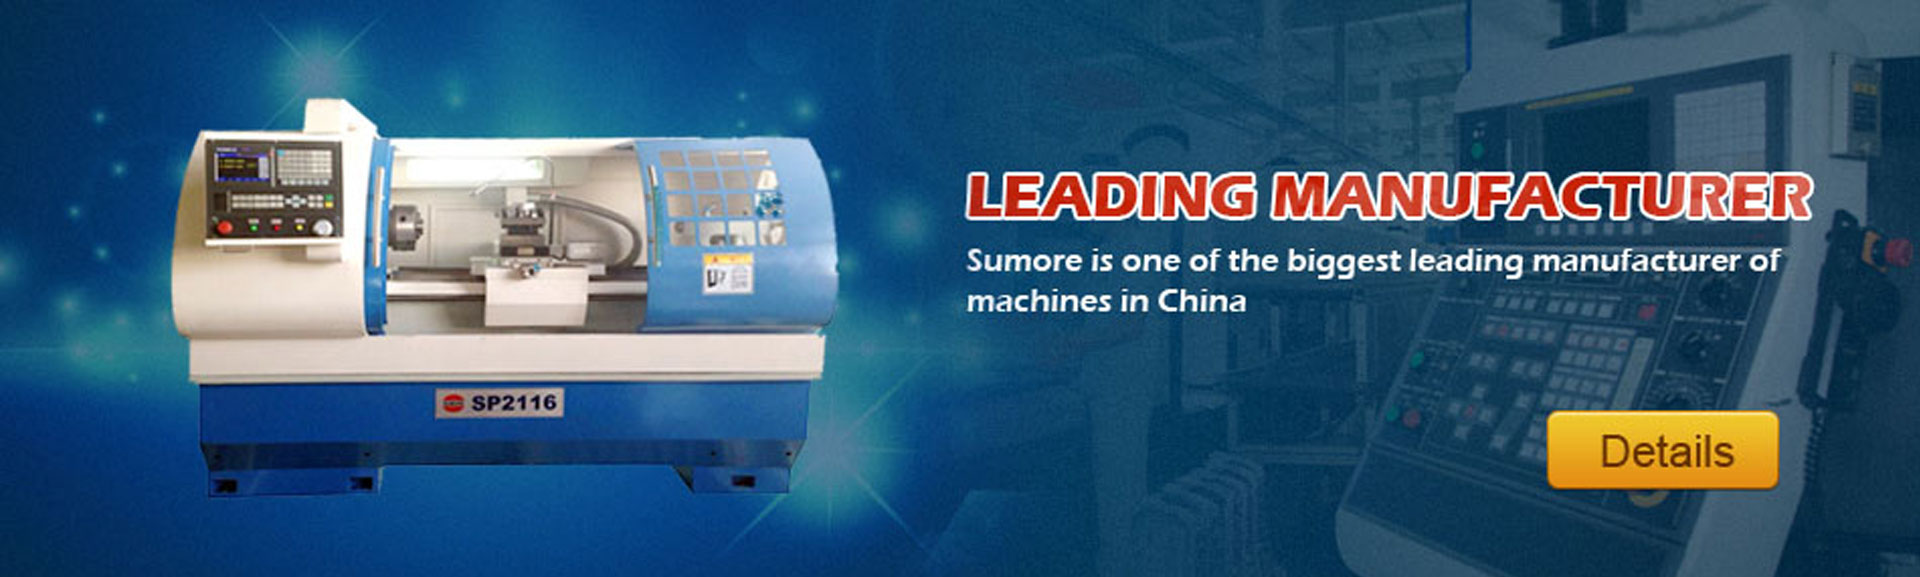 SHANGHAI SUMORE INDUSTRIAL CO., LTD. Bnanner2